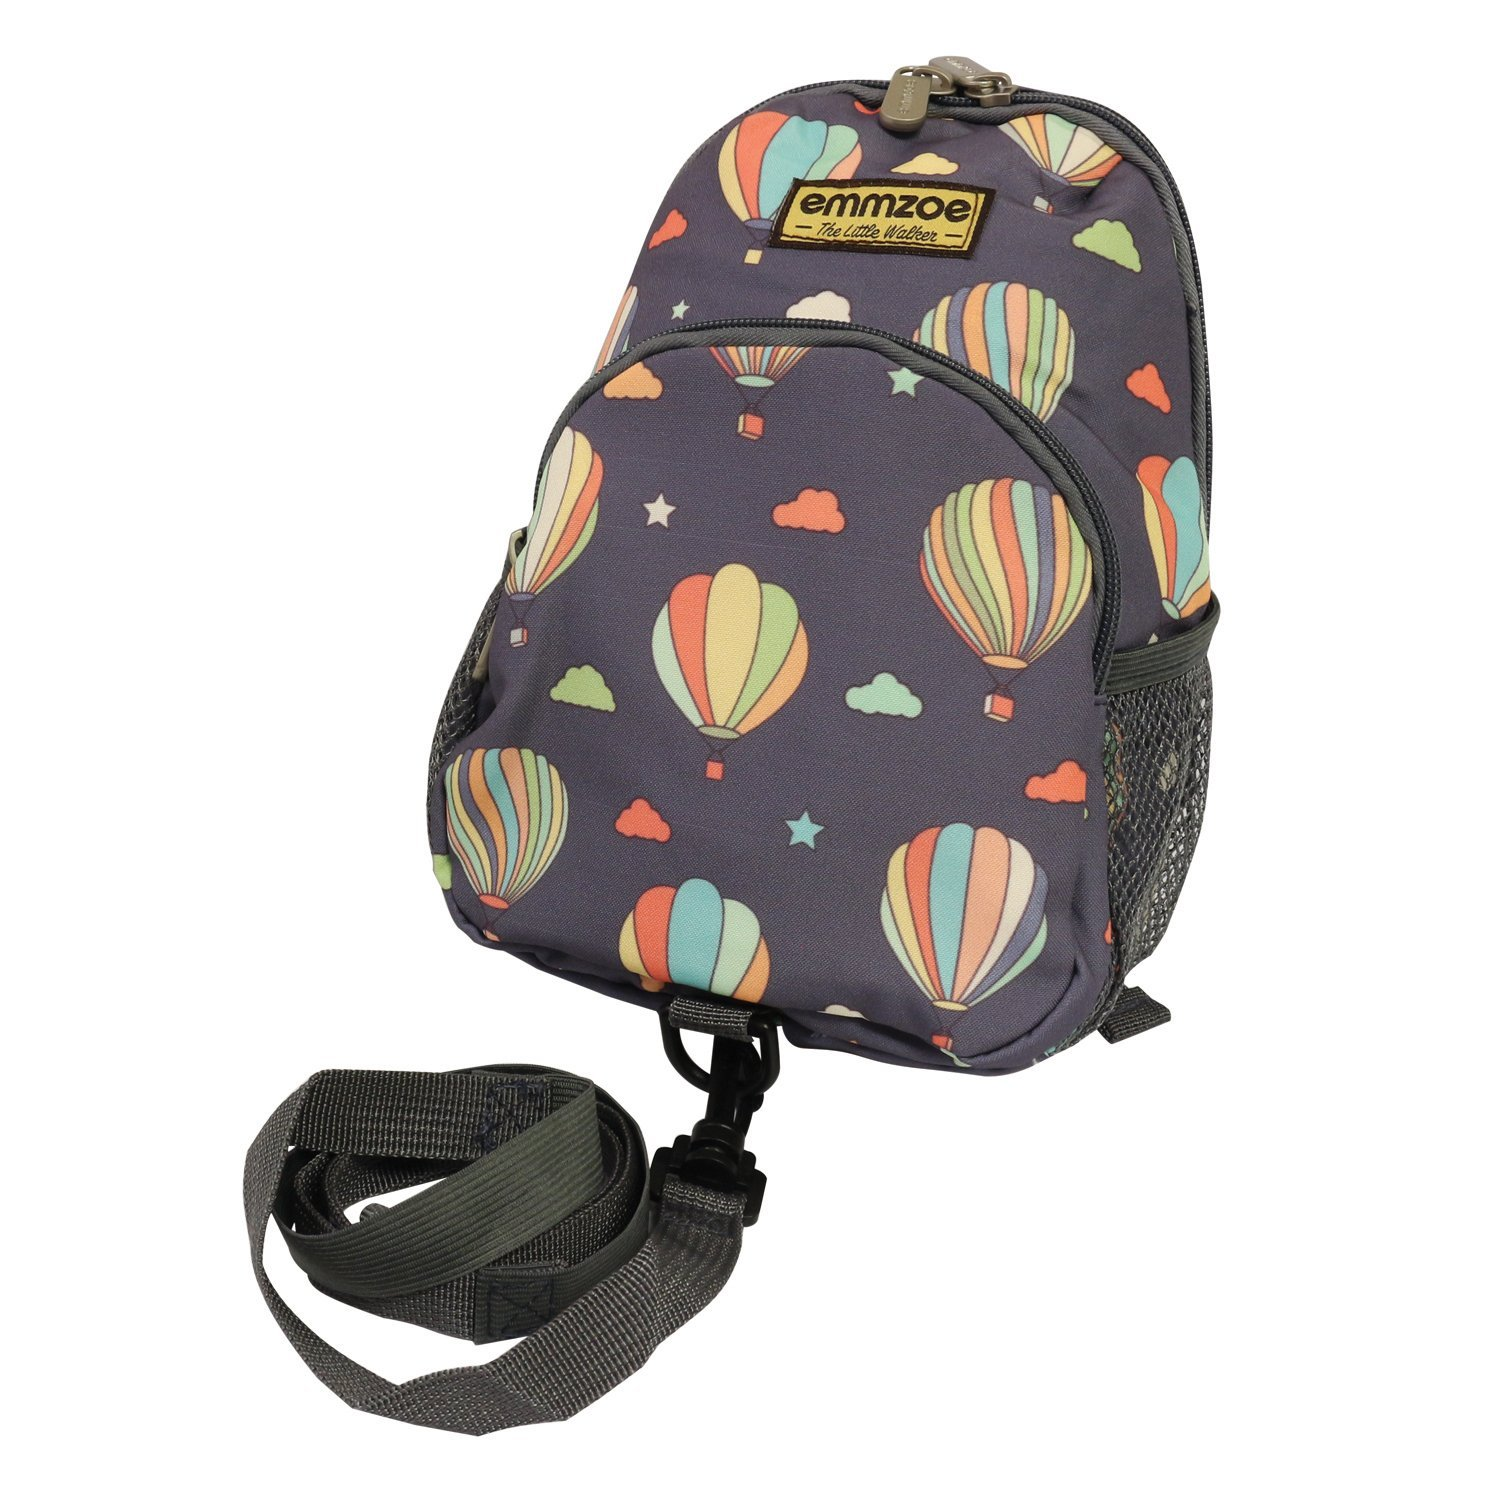 Emmzoe Little Walker Toddler Backpack with Detachable Safety Harness Leash - Lightweight Fits Snacks, Food, Toys (Pastel Hot Air Balloons)